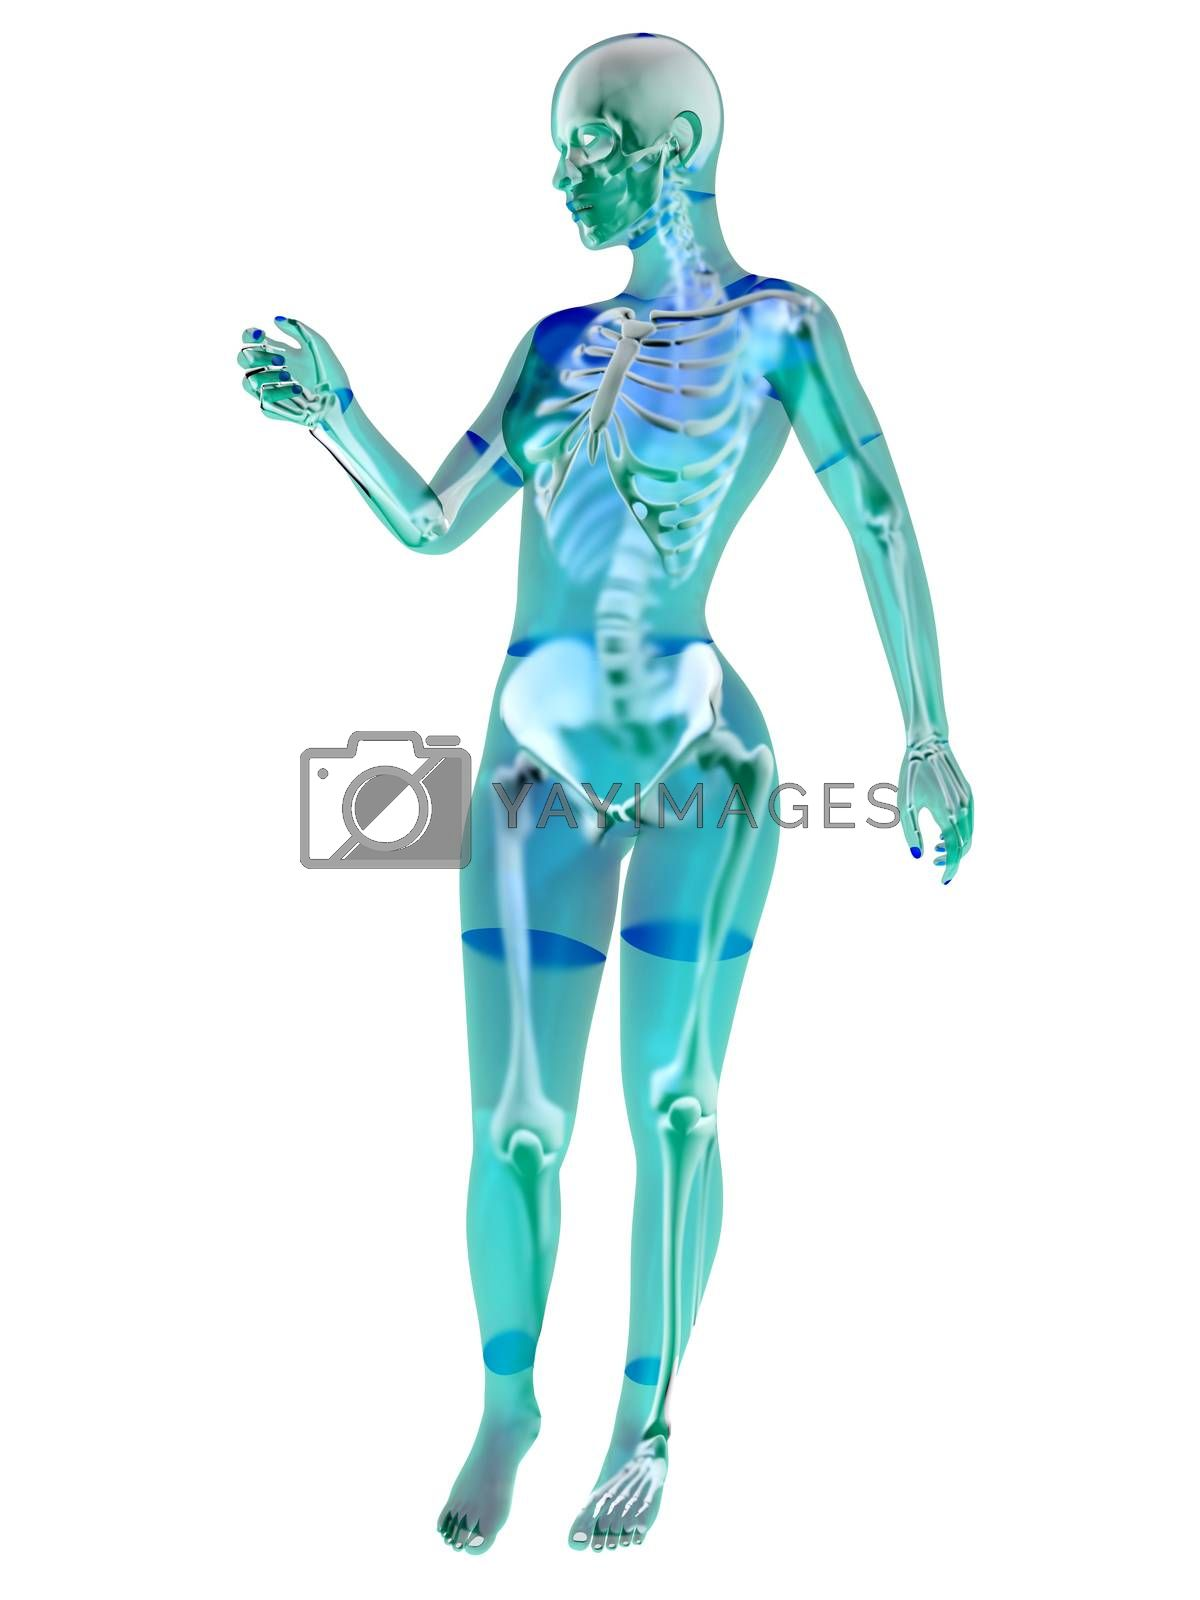 Female Anatomy by Spectral